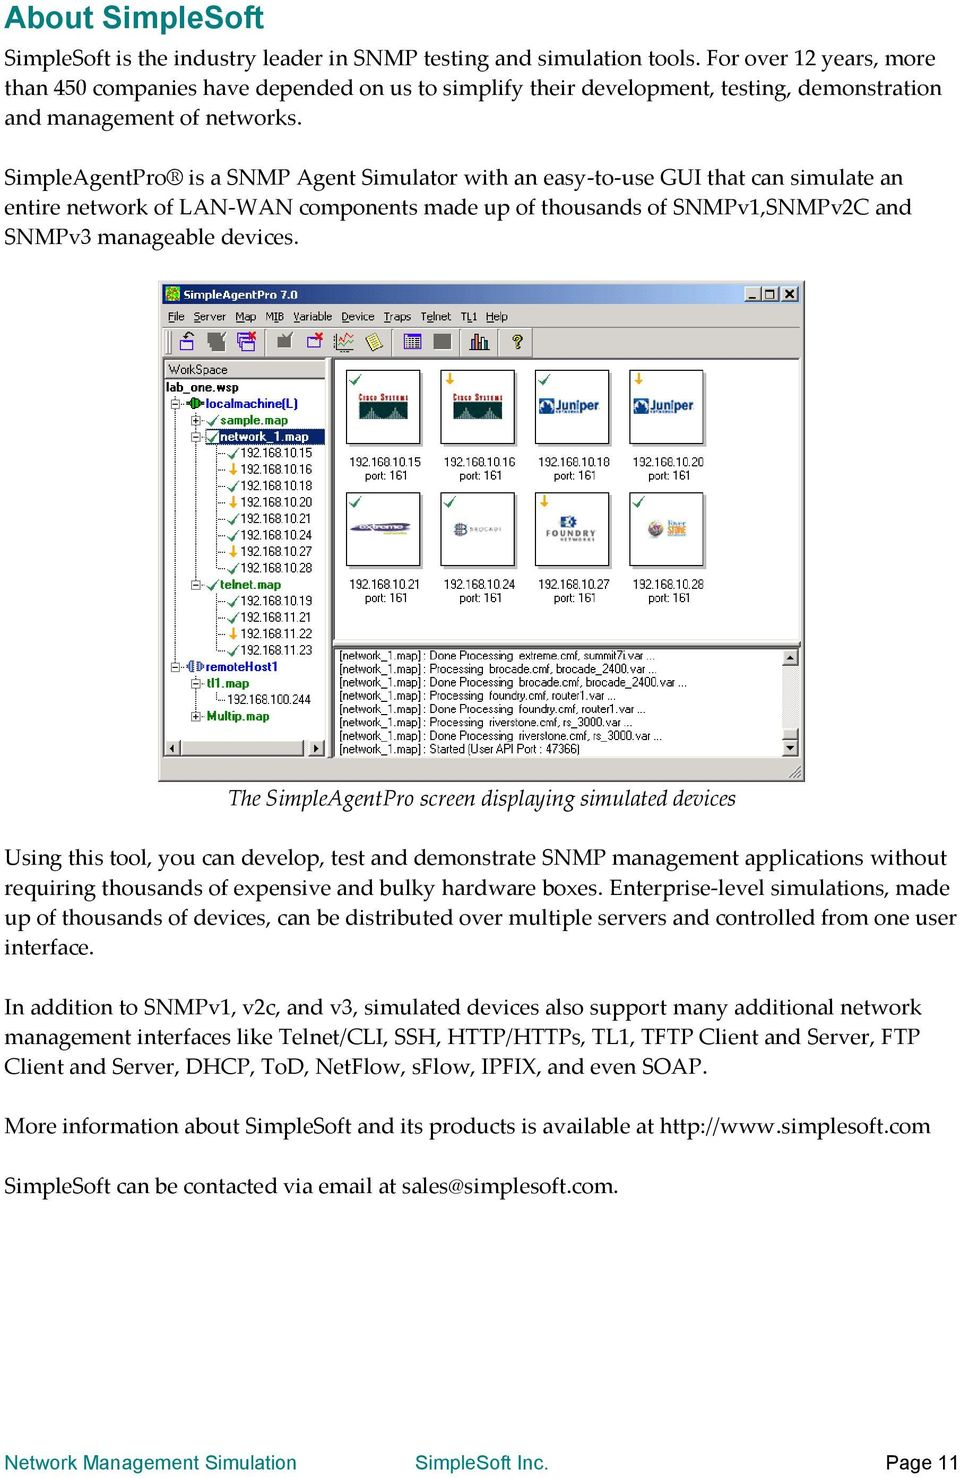 SimpleAgentPro is a SNMP Agent Simulator with an easy-to-use GUI that can simulate an entire network of LAN-WAN components made up of thousands of SNMPv1,SNMPv2C and SNMPv3 manageable devices.